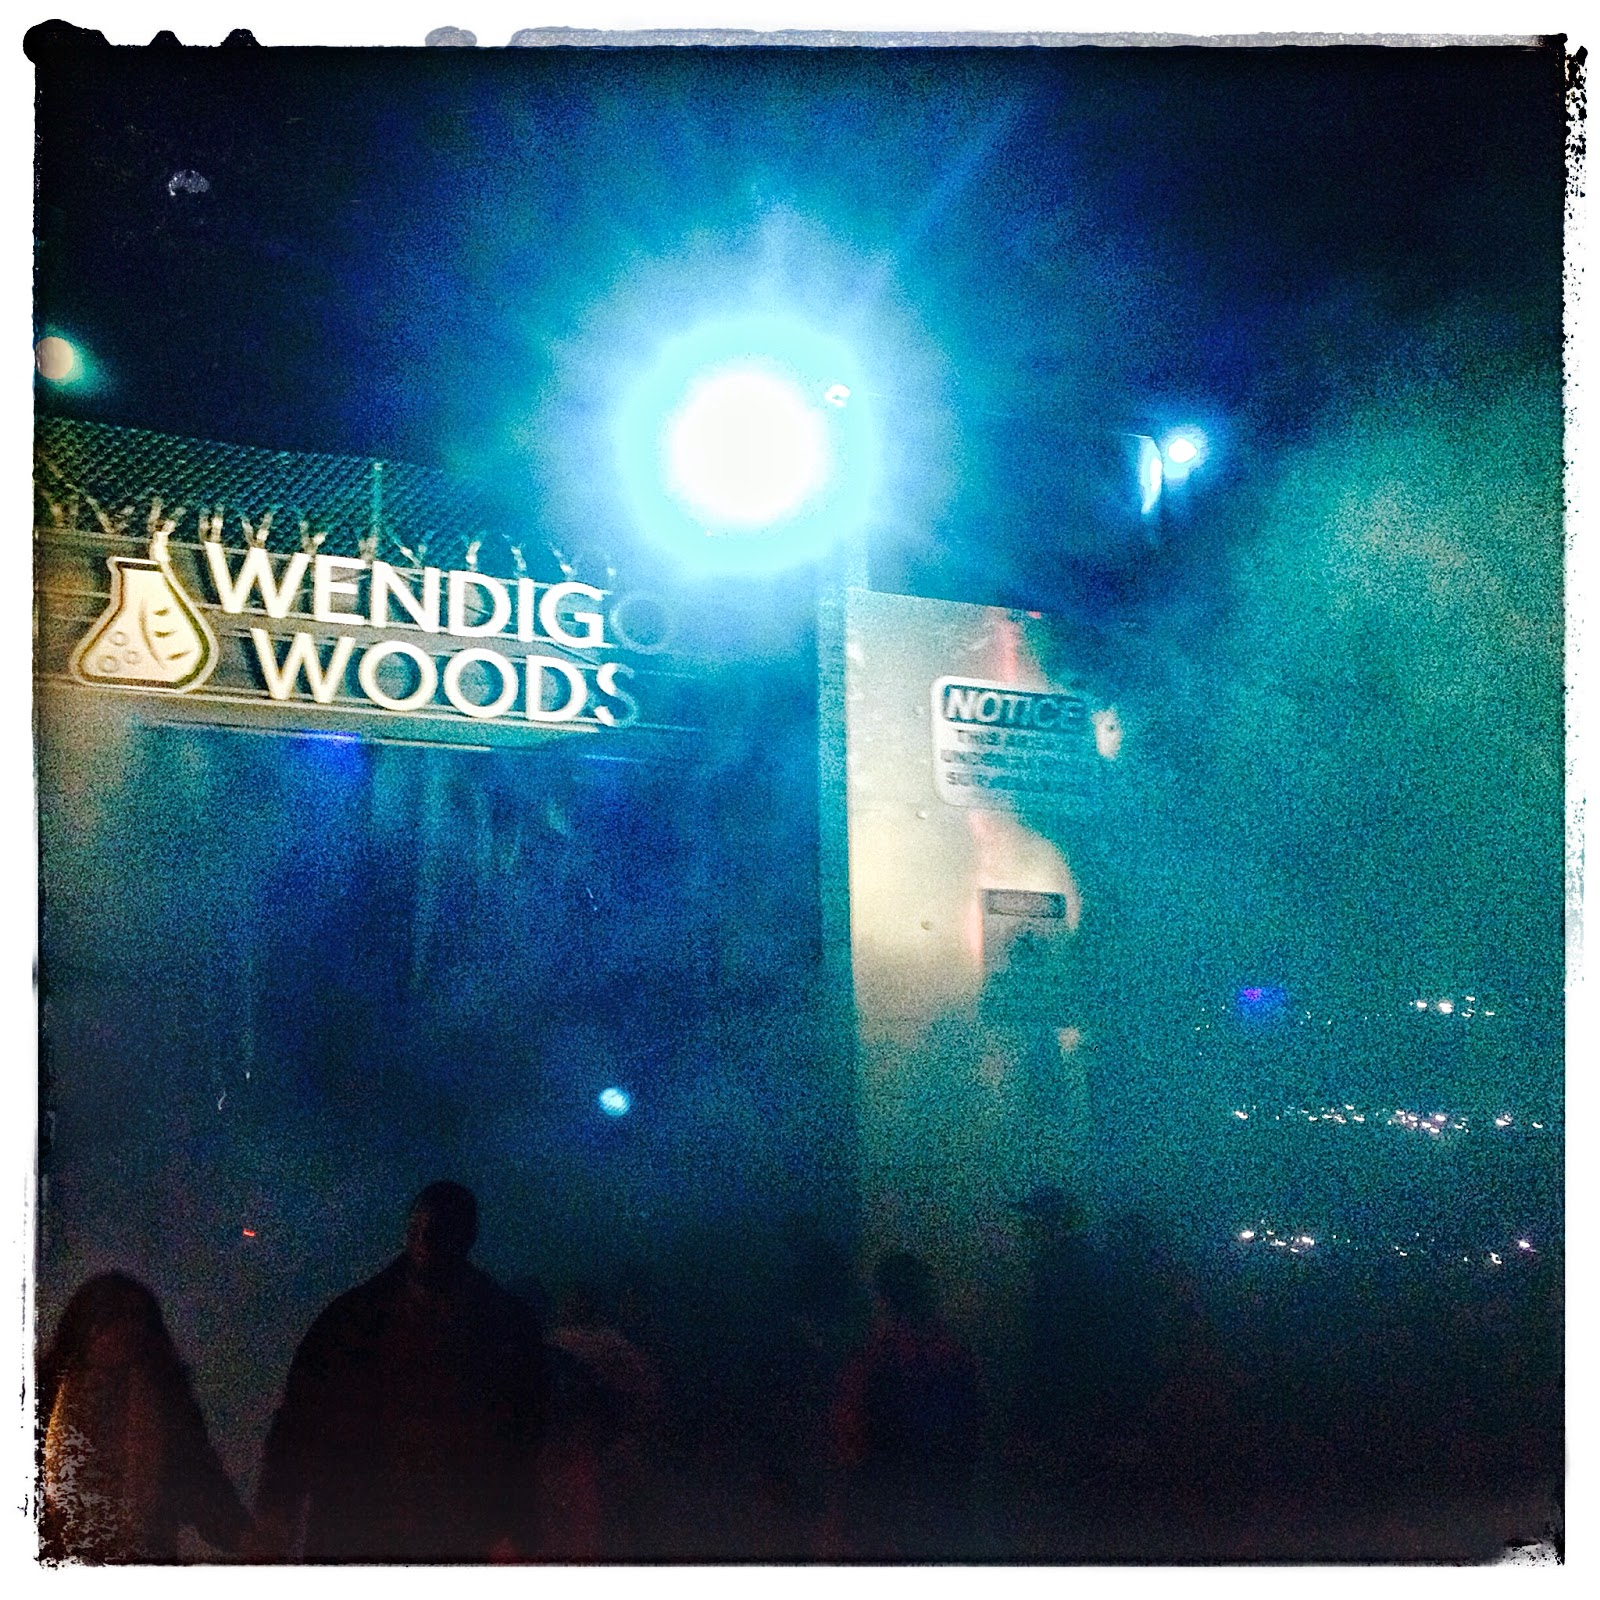 Wendigo Woods at Busch Gardens, Williamsburg via foobella.blogspot.com